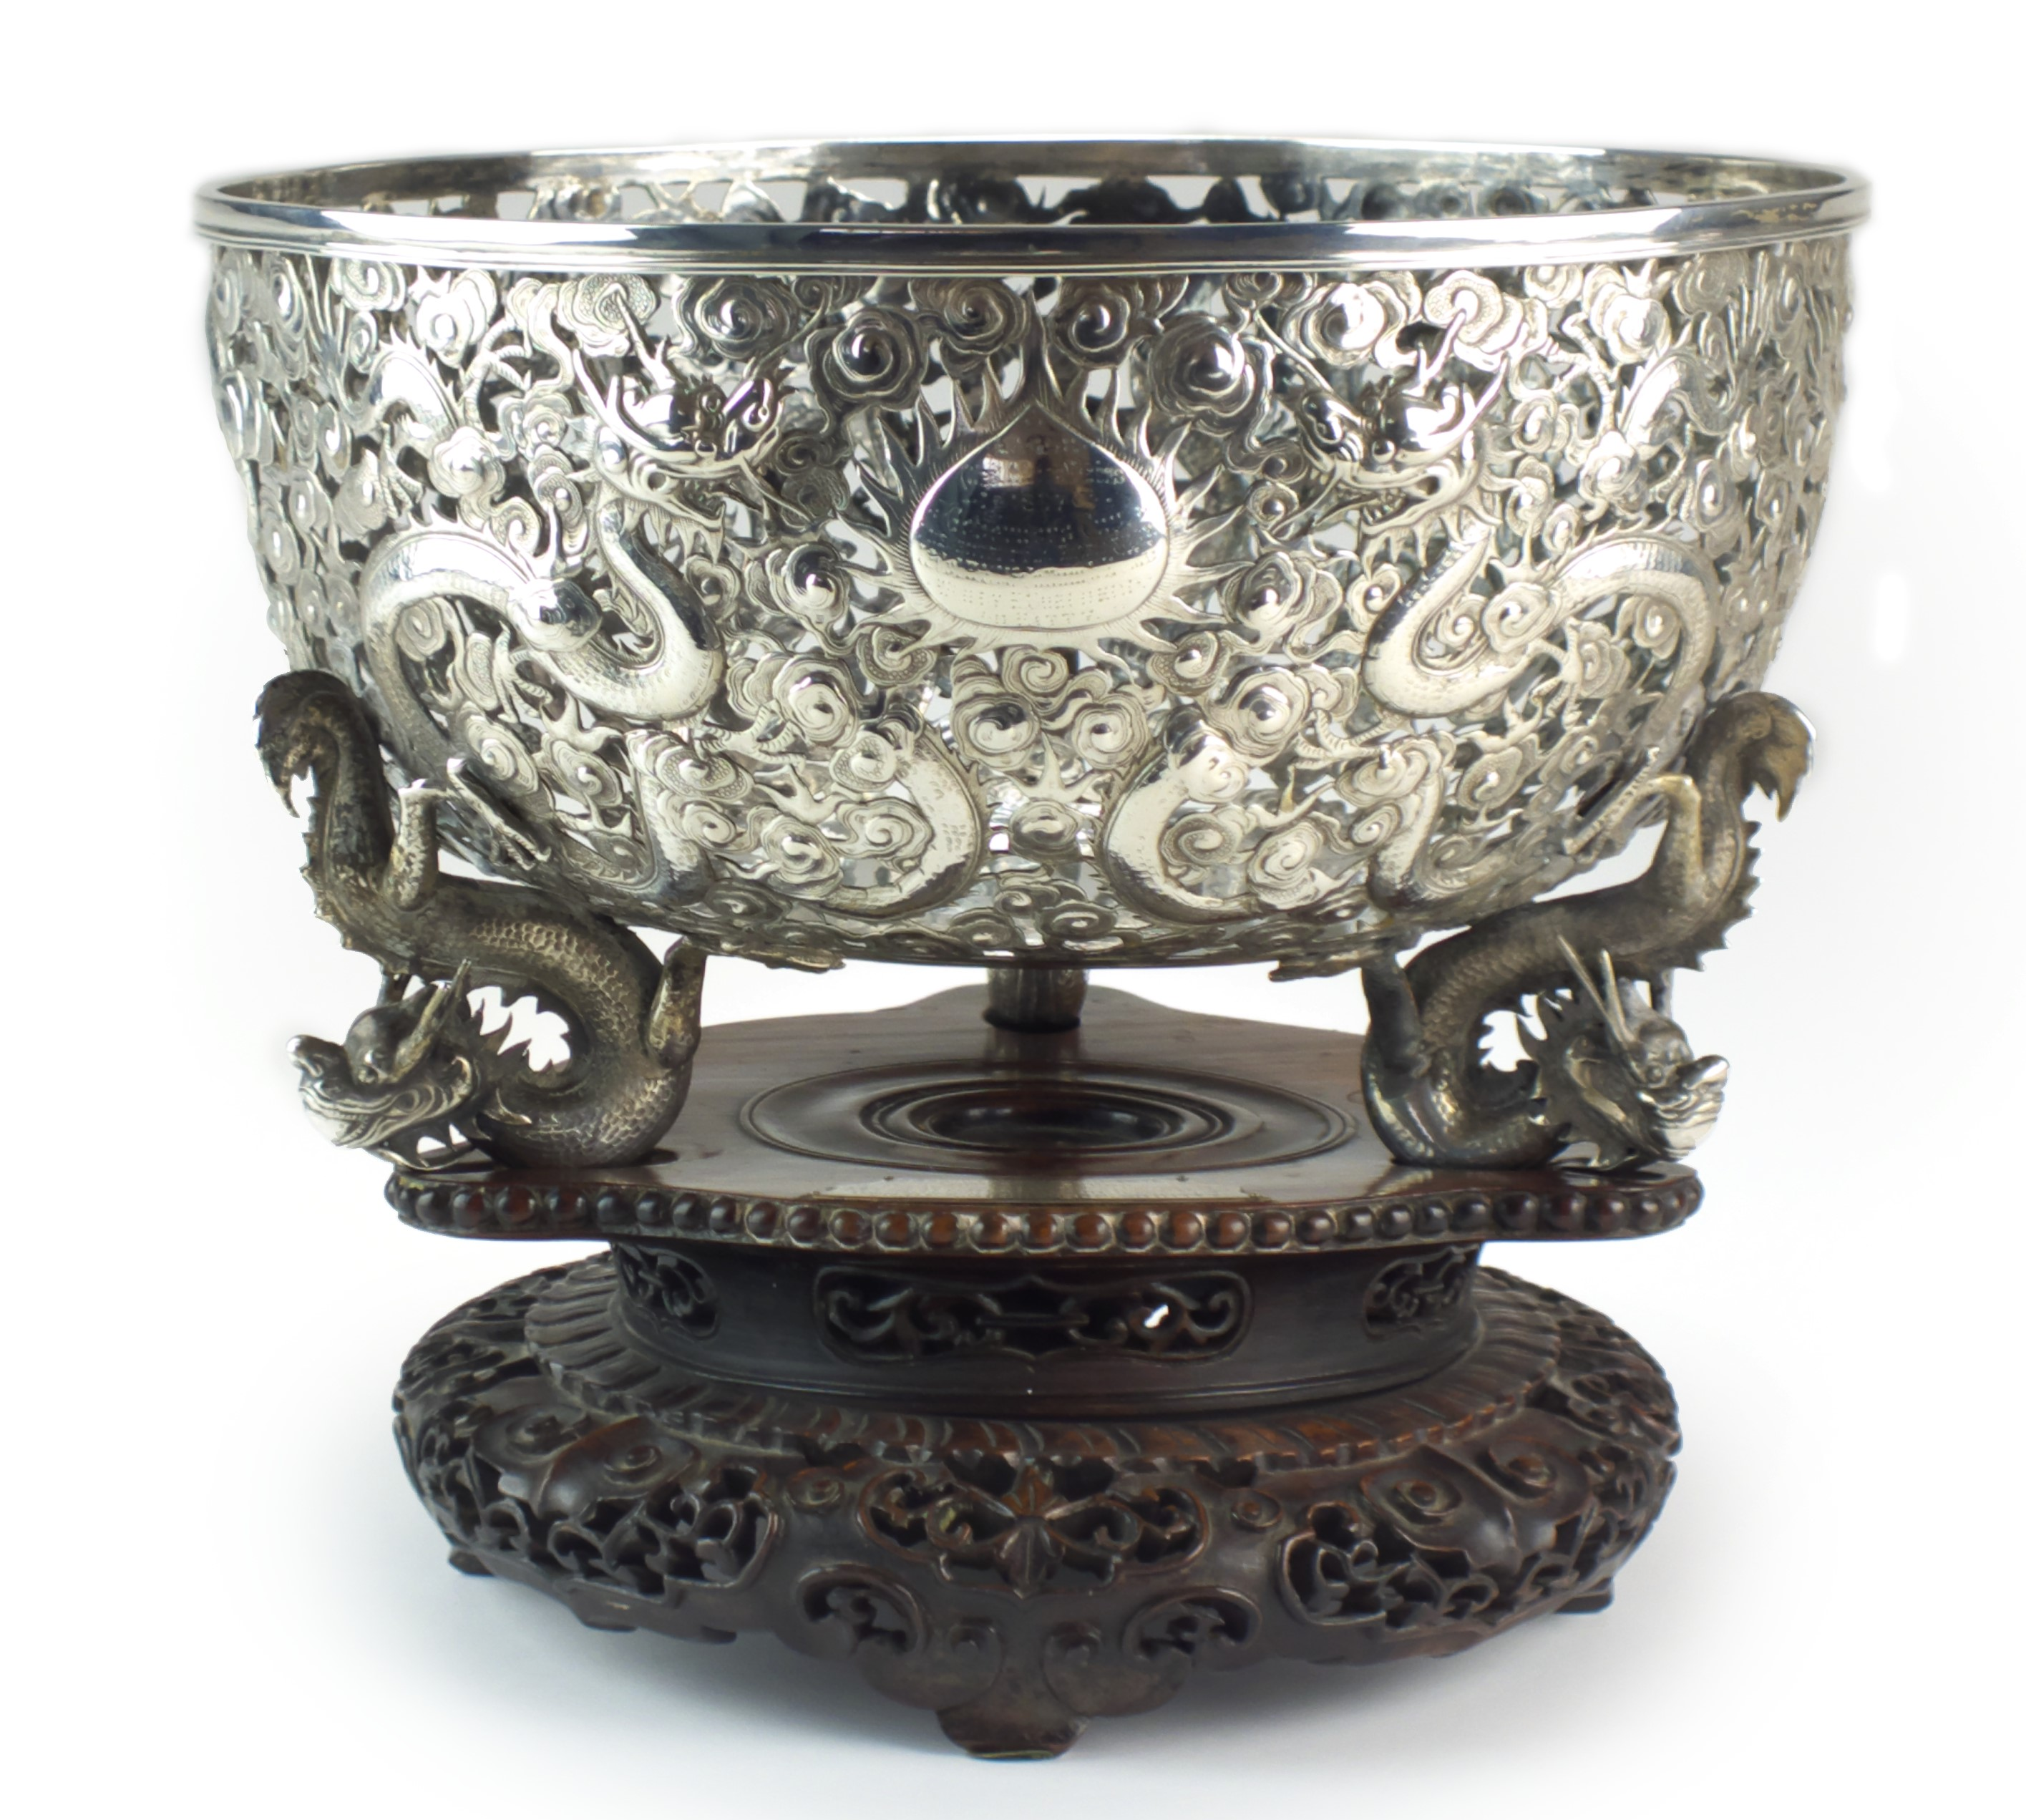 The Governor's Cup: A superb Chinese silver bowl by Wang Hing & Co, dated 1897, of rounded form and raised on three wrythen dragon feet, the openwork sides tooled and chased with multiple dragons in flight amid roiling clouds, a central flaming pearl cartouche inscribed 'Lagos (West Africa)